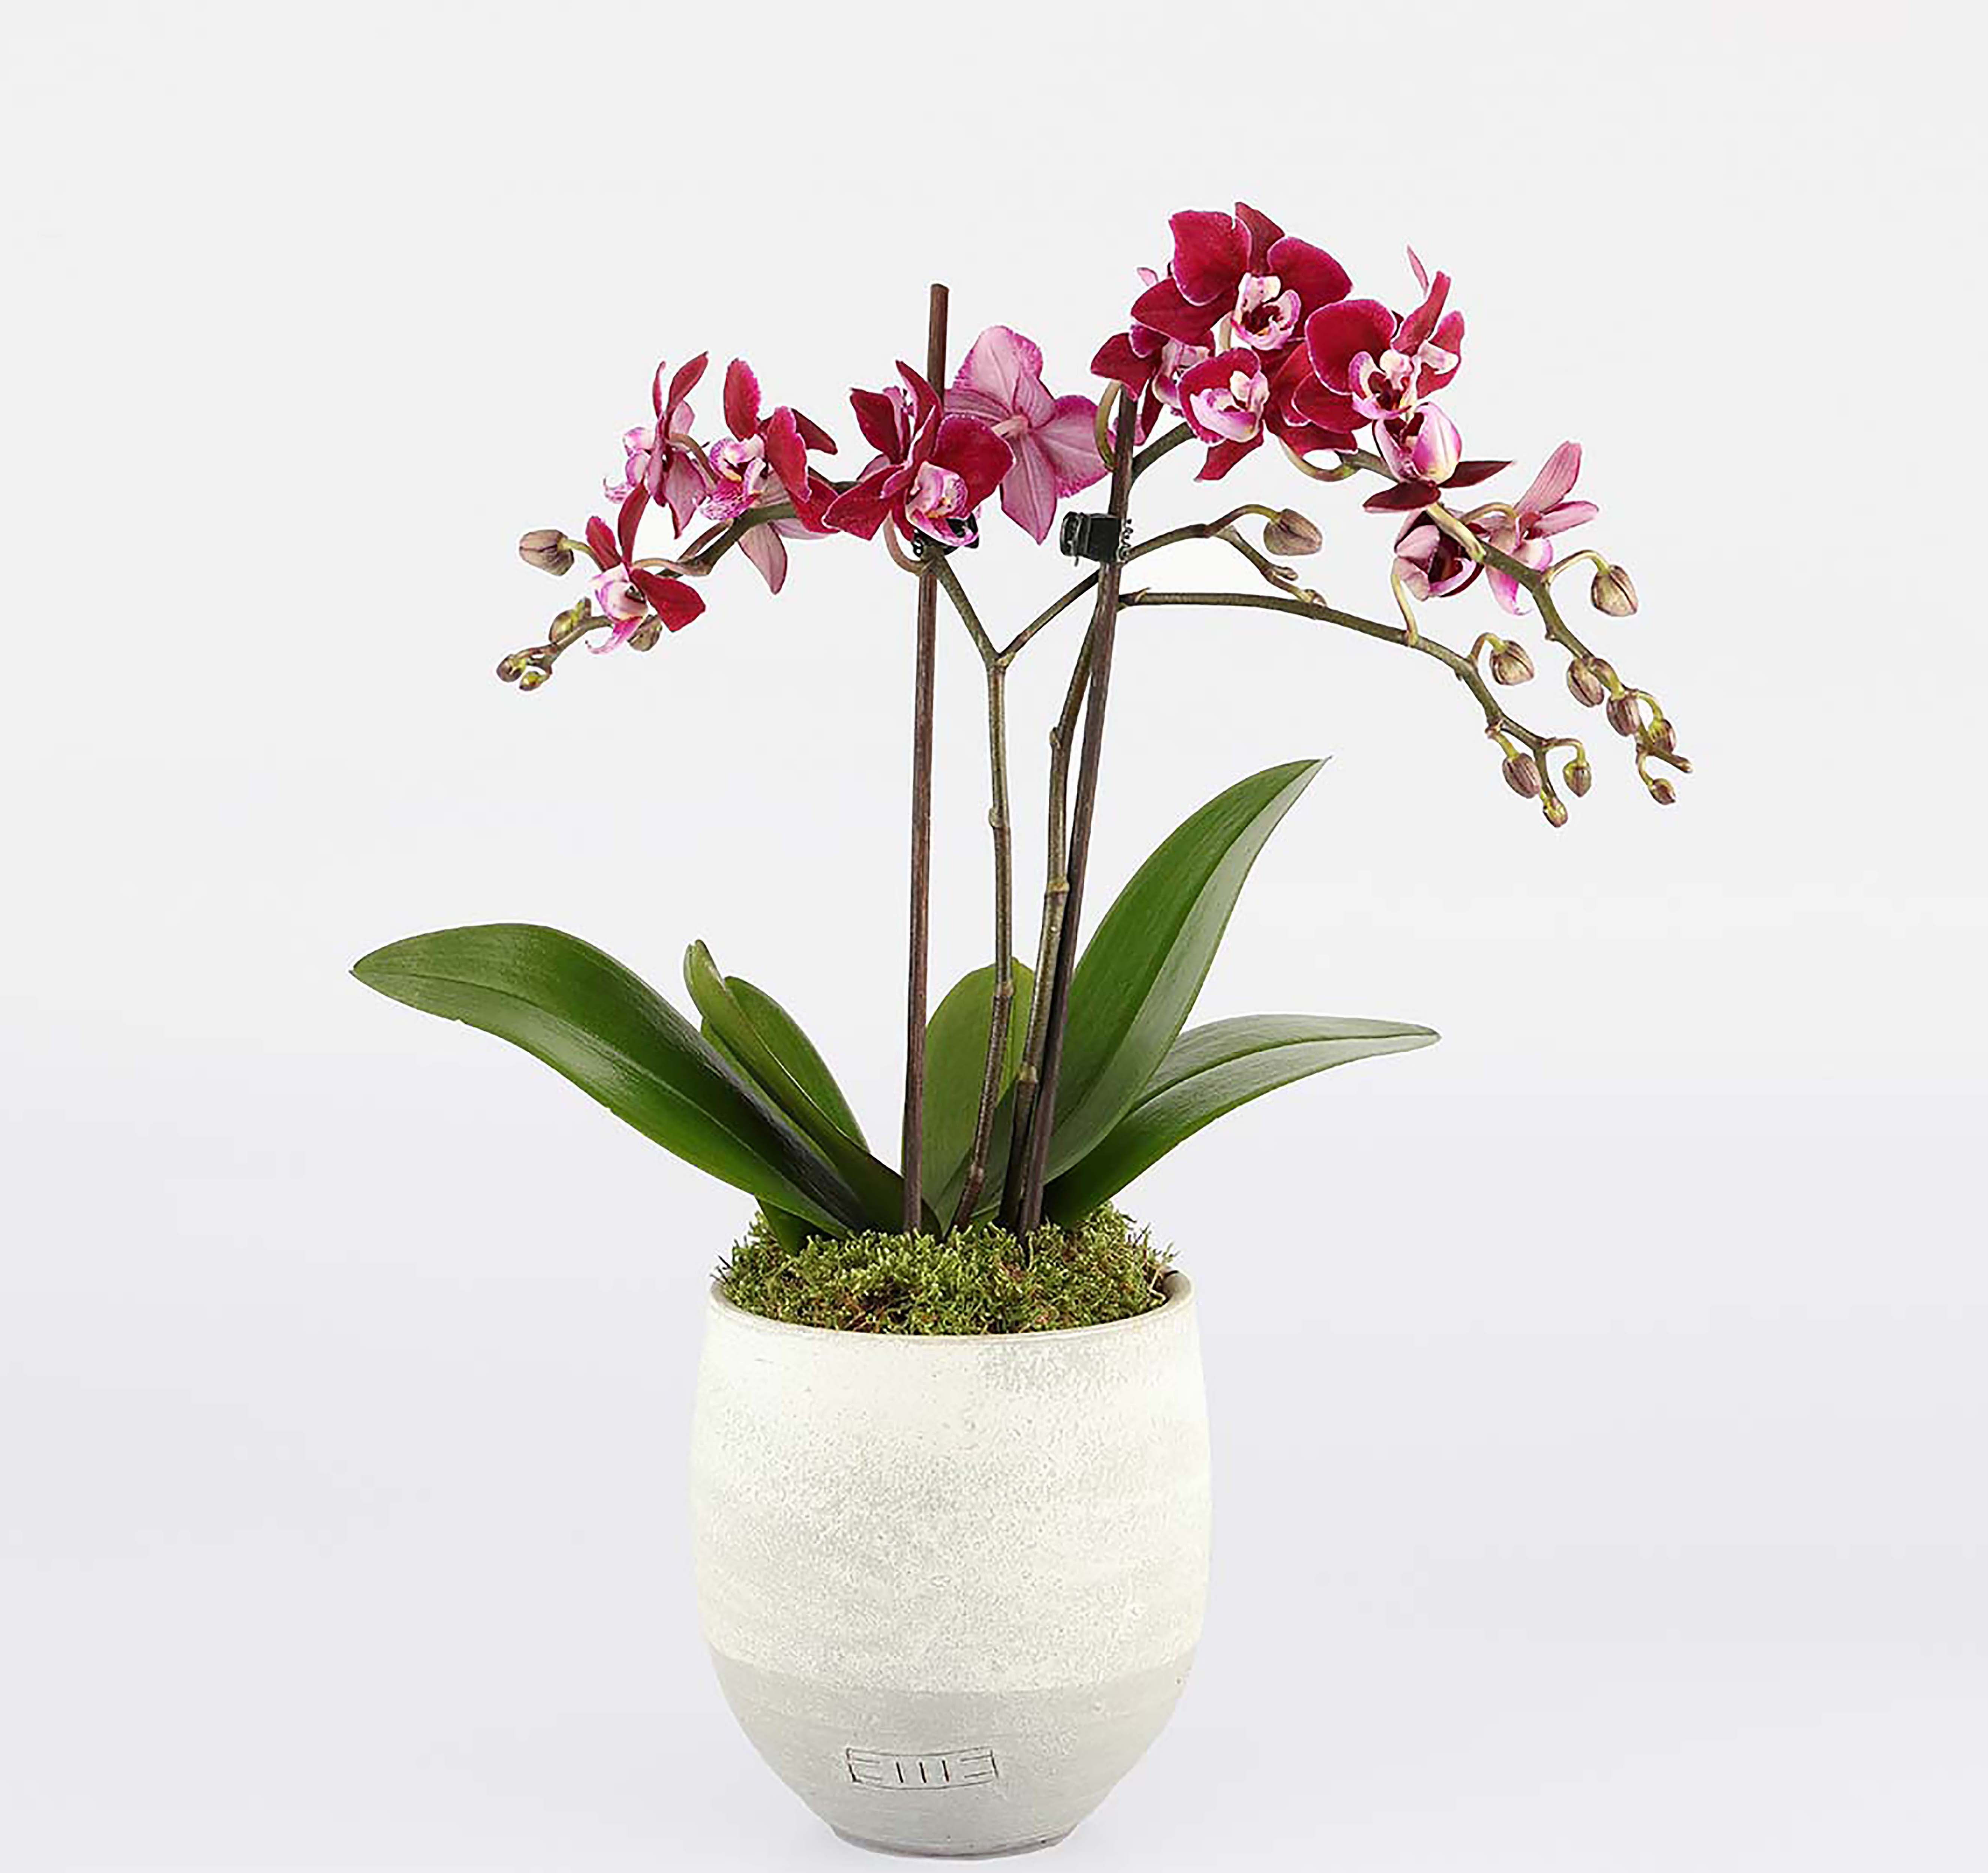 The Little Botanical Orchid, £21.99 at Dobbies